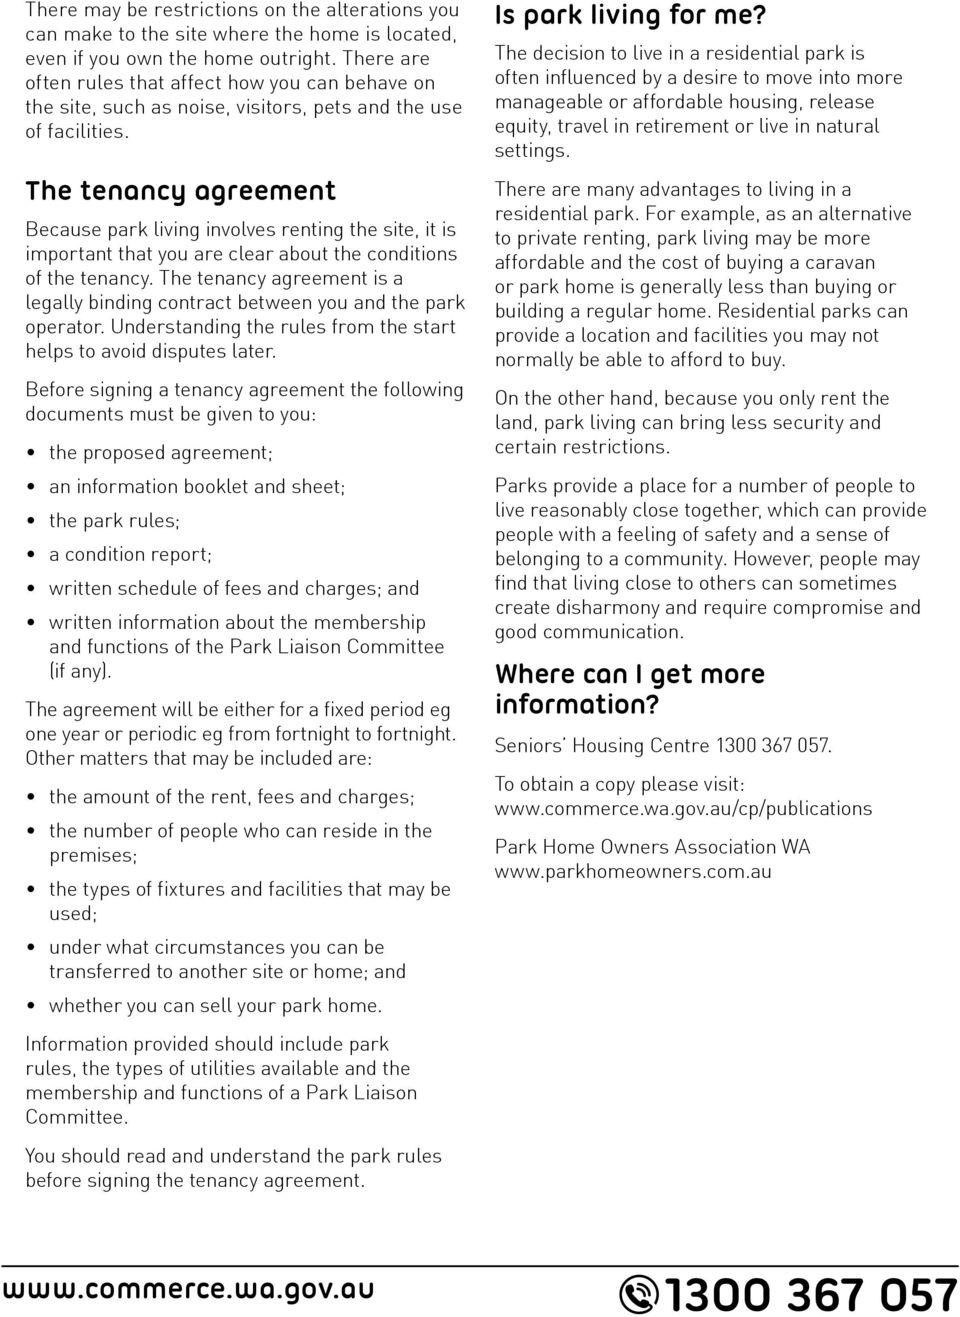 The tenancy agreement Because park living involves renting the site, it is important that you are clear about the conditions of the tenancy.